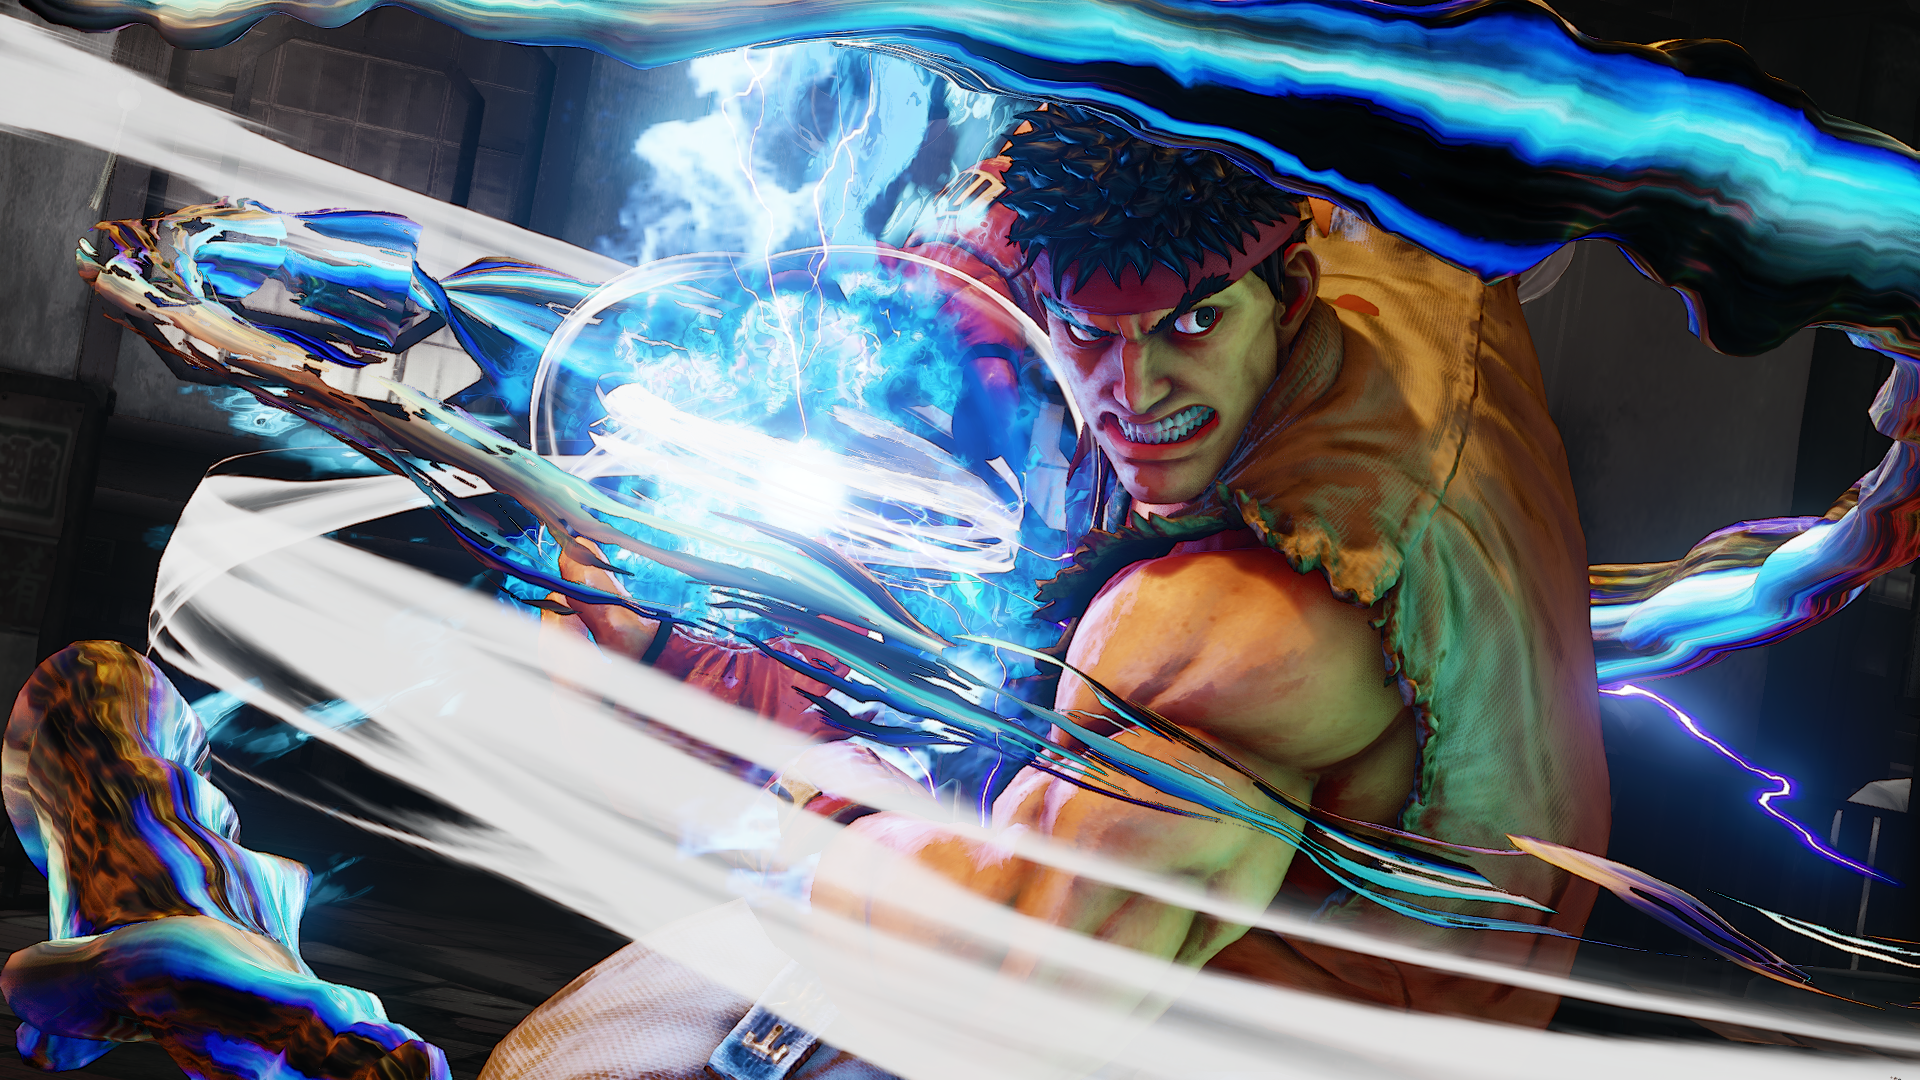 Rival School S Akira To Join Street Fighter V In New Roster